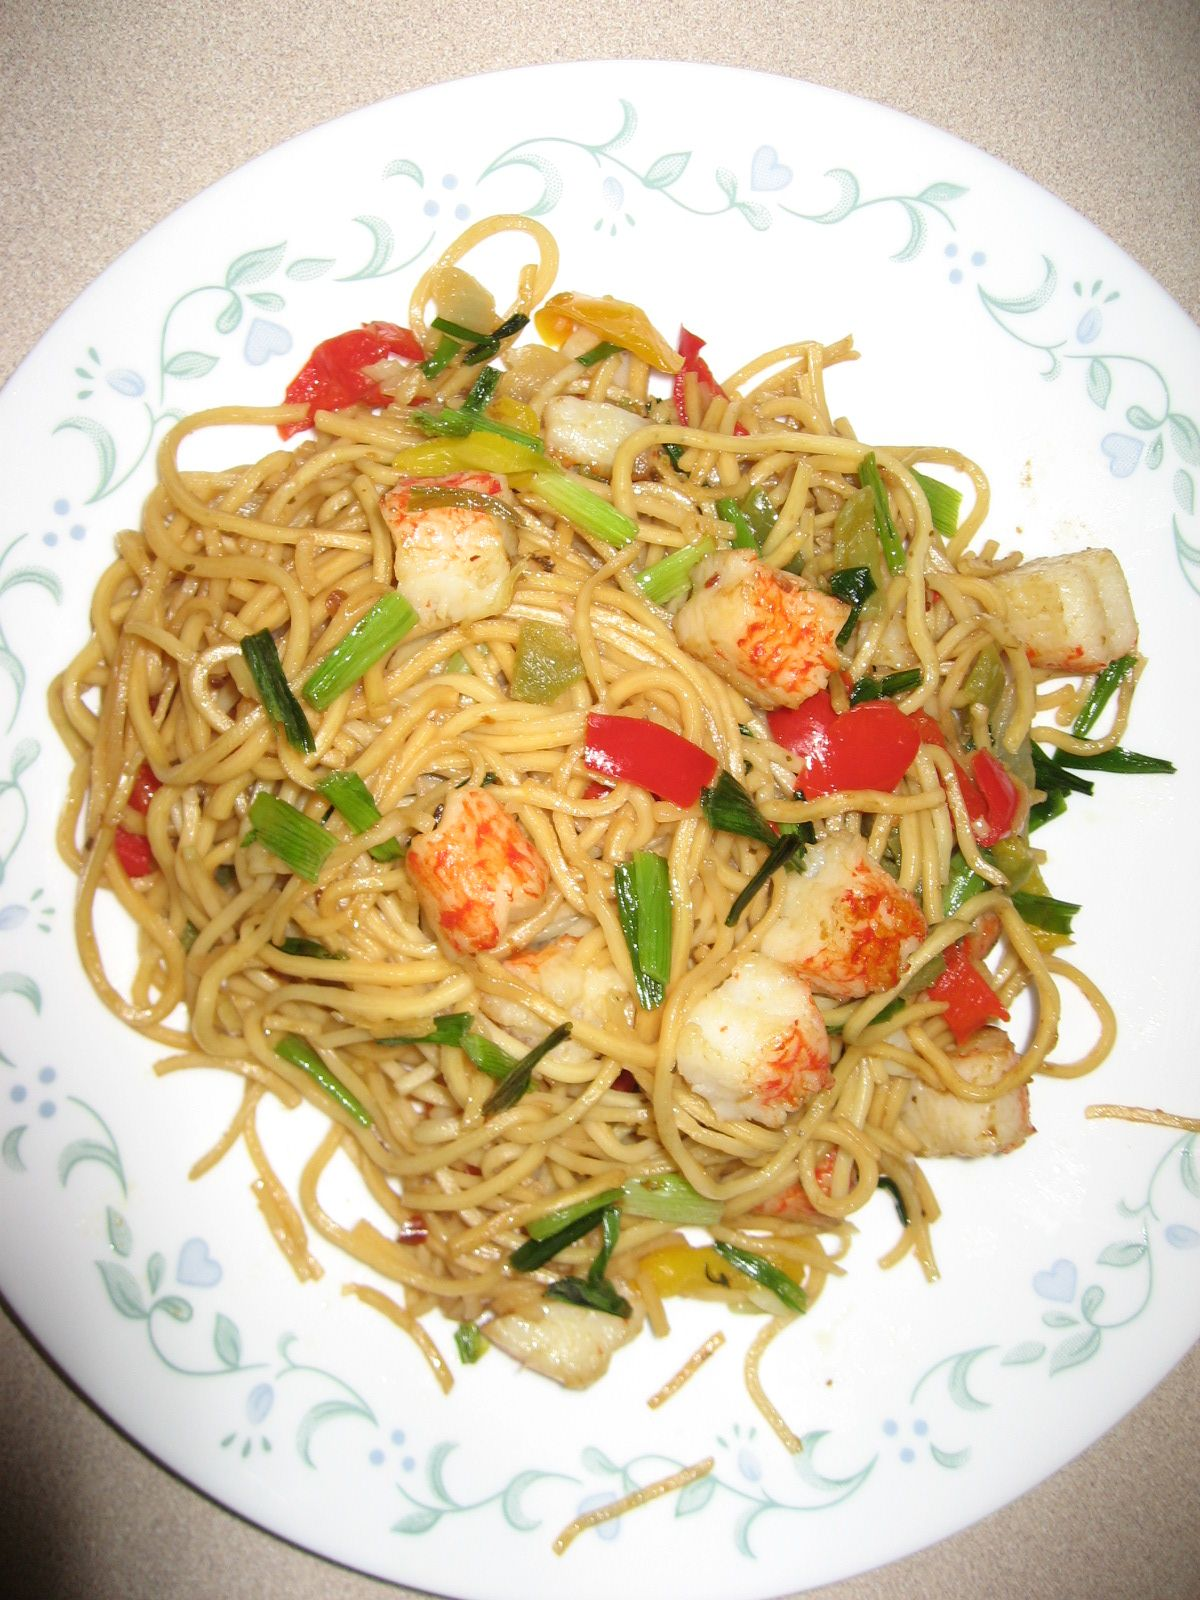 Chinese noodles and lobster tempts my palate pinterest noodle chinese noodles with lobster is a quick and easy to make dish with readily available ingredients this dish does not have msg and is made using simple forumfinder Choice Image